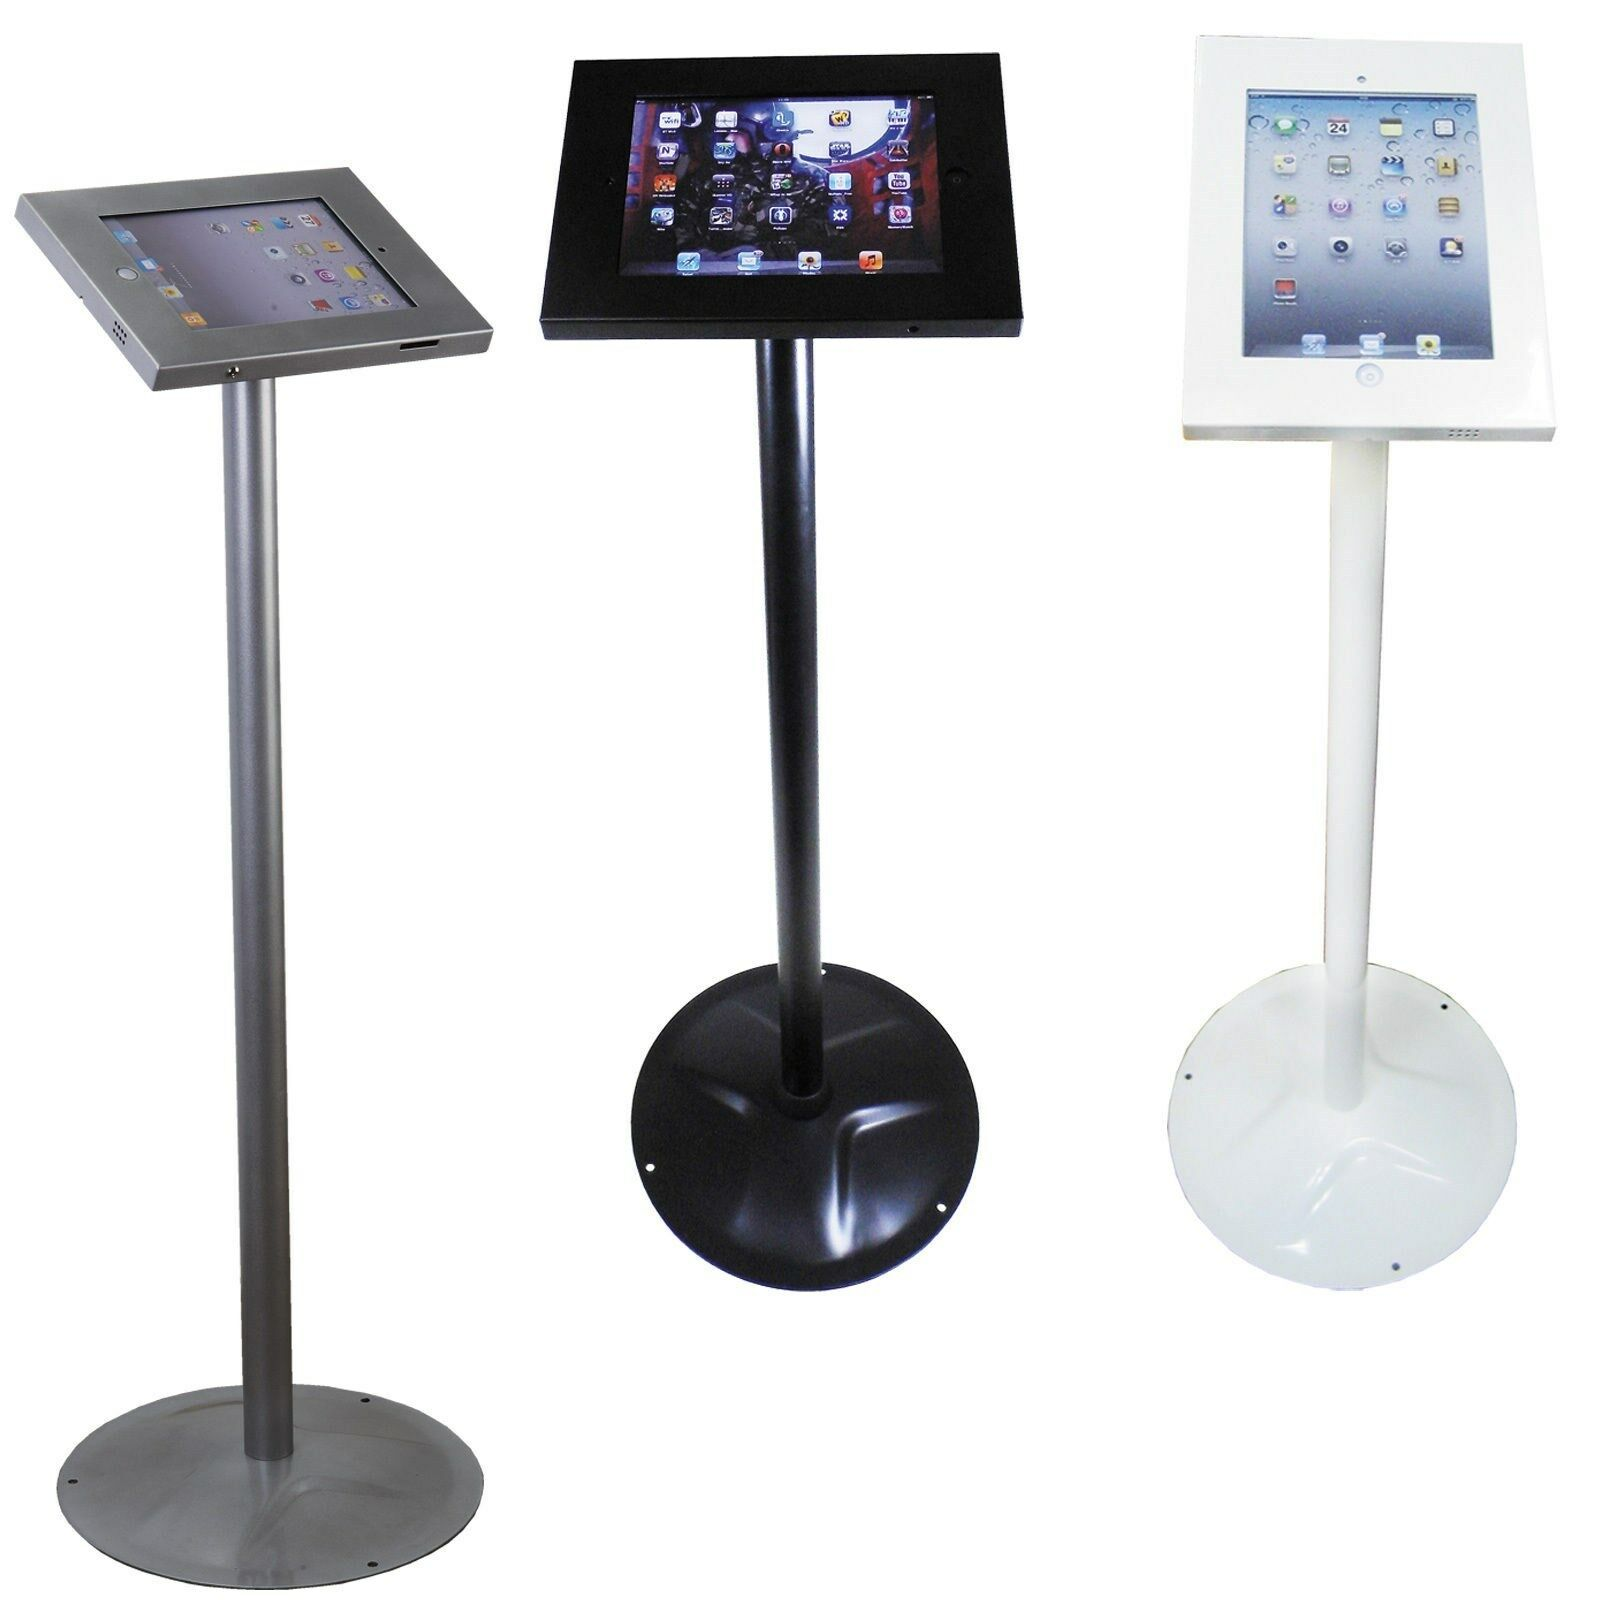 Exhibition Stand Floor : Ipad air anti theft secure floor stand display